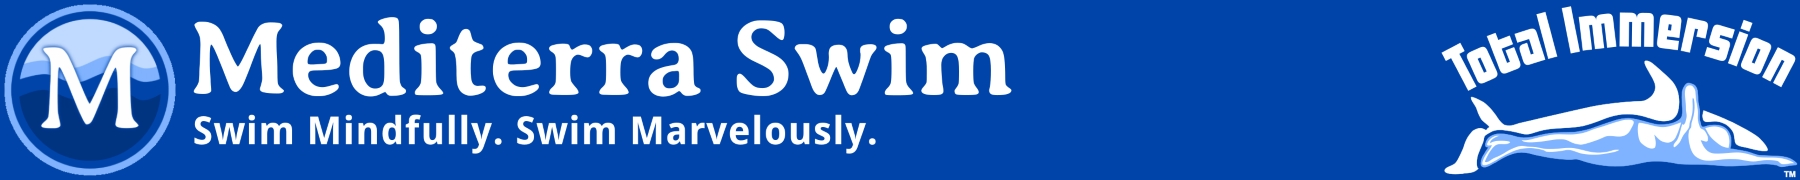 Mediterra Swim - Total Immersion Open Water Specialist